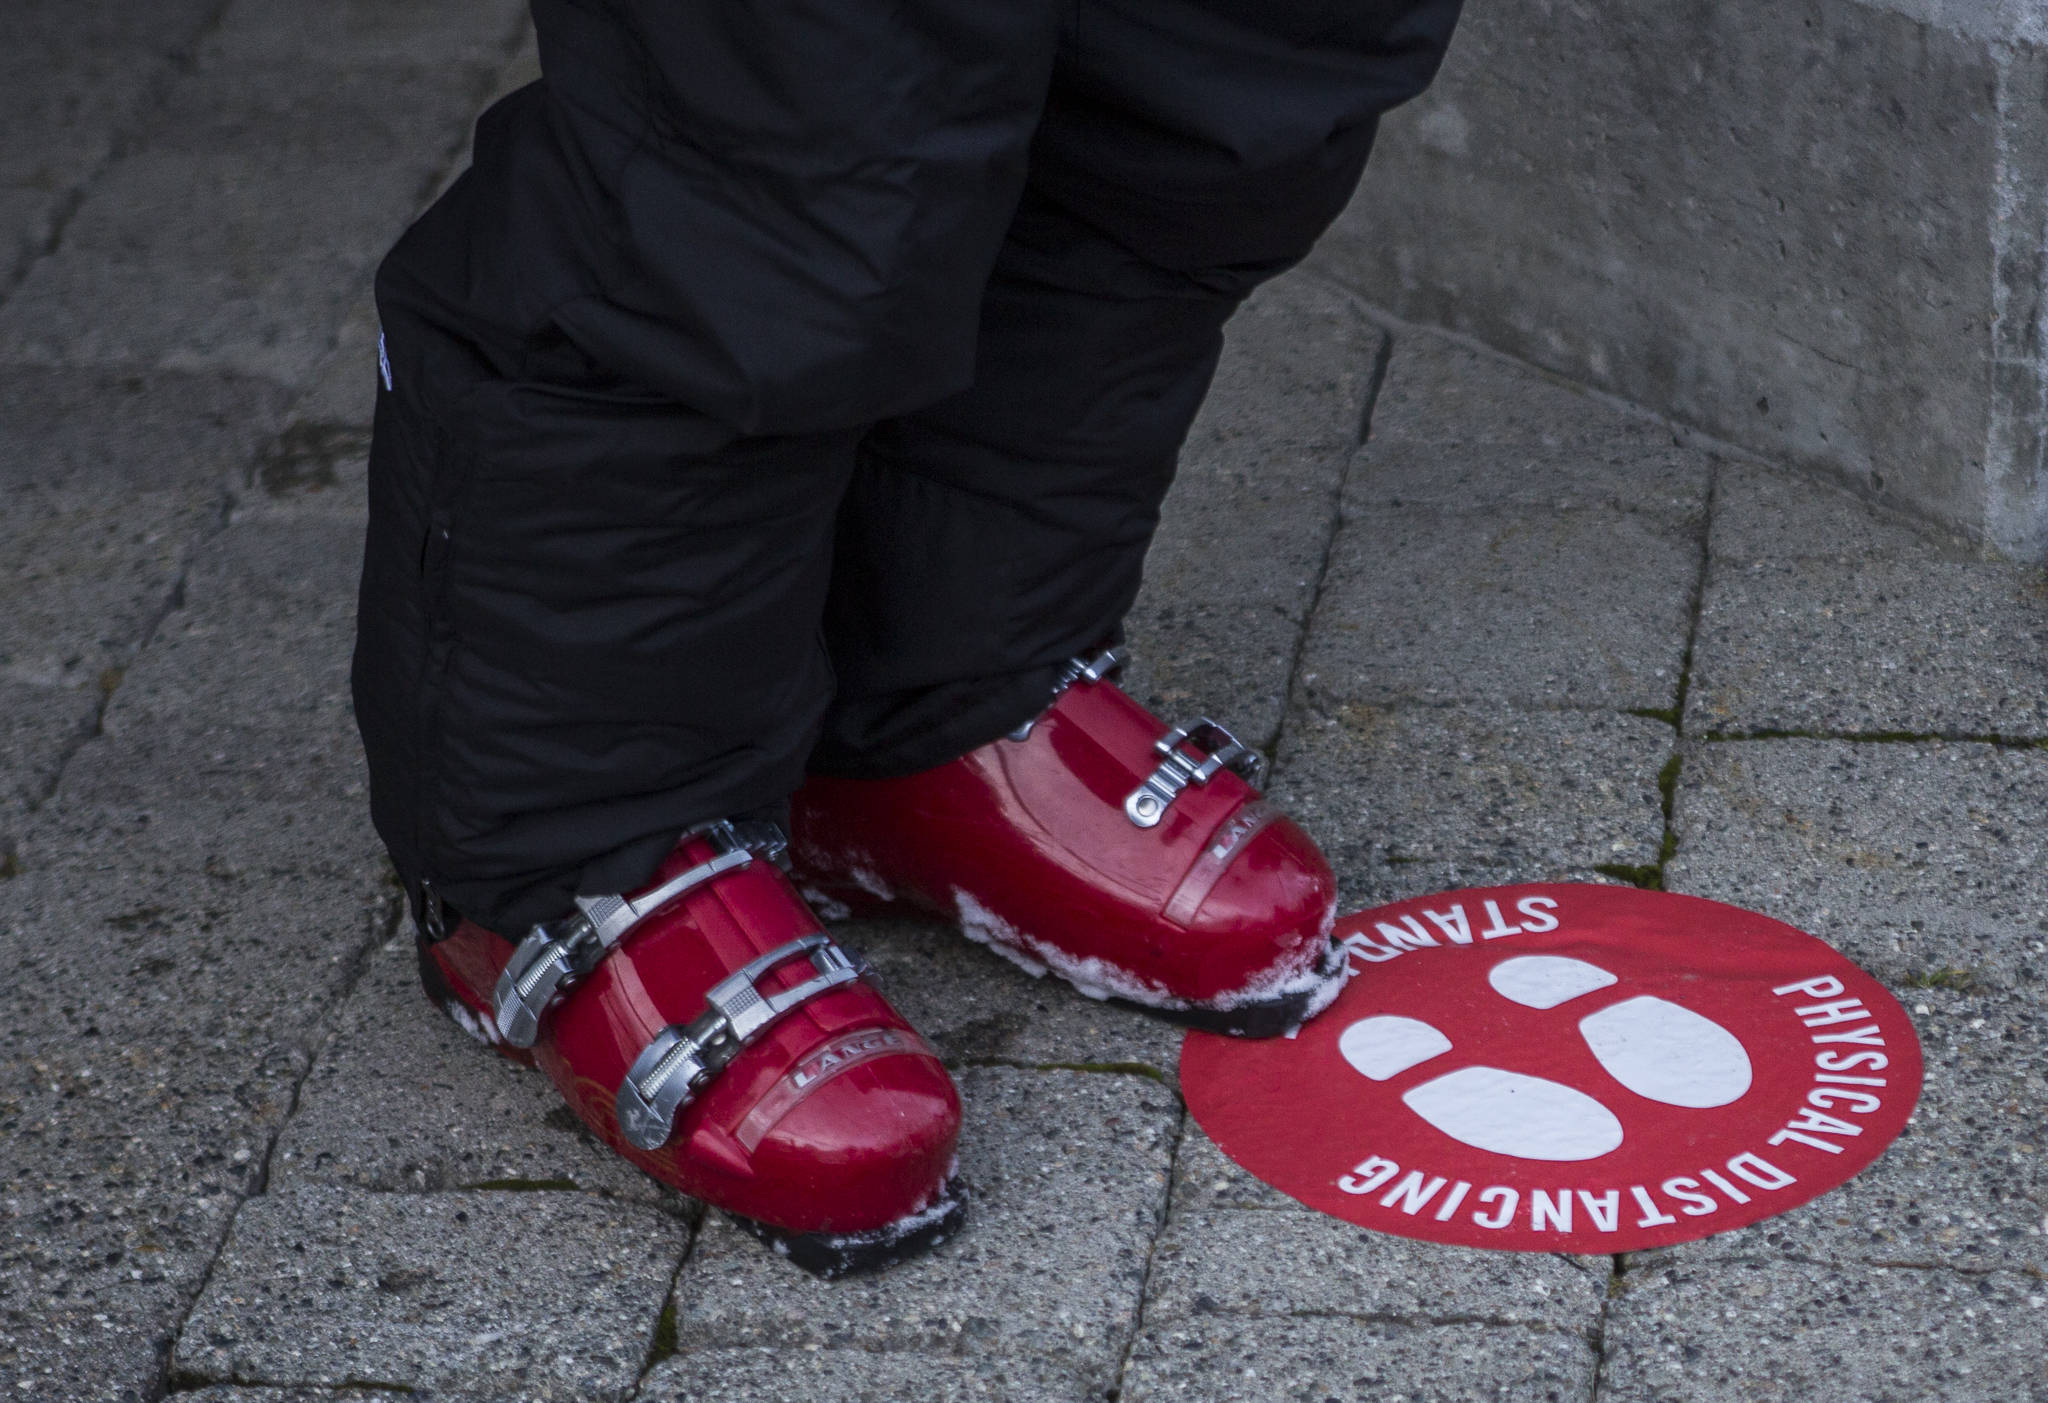 Floor stickers encourage social distancing at Stevens Pass. (Olivia Vanni / The Herald)